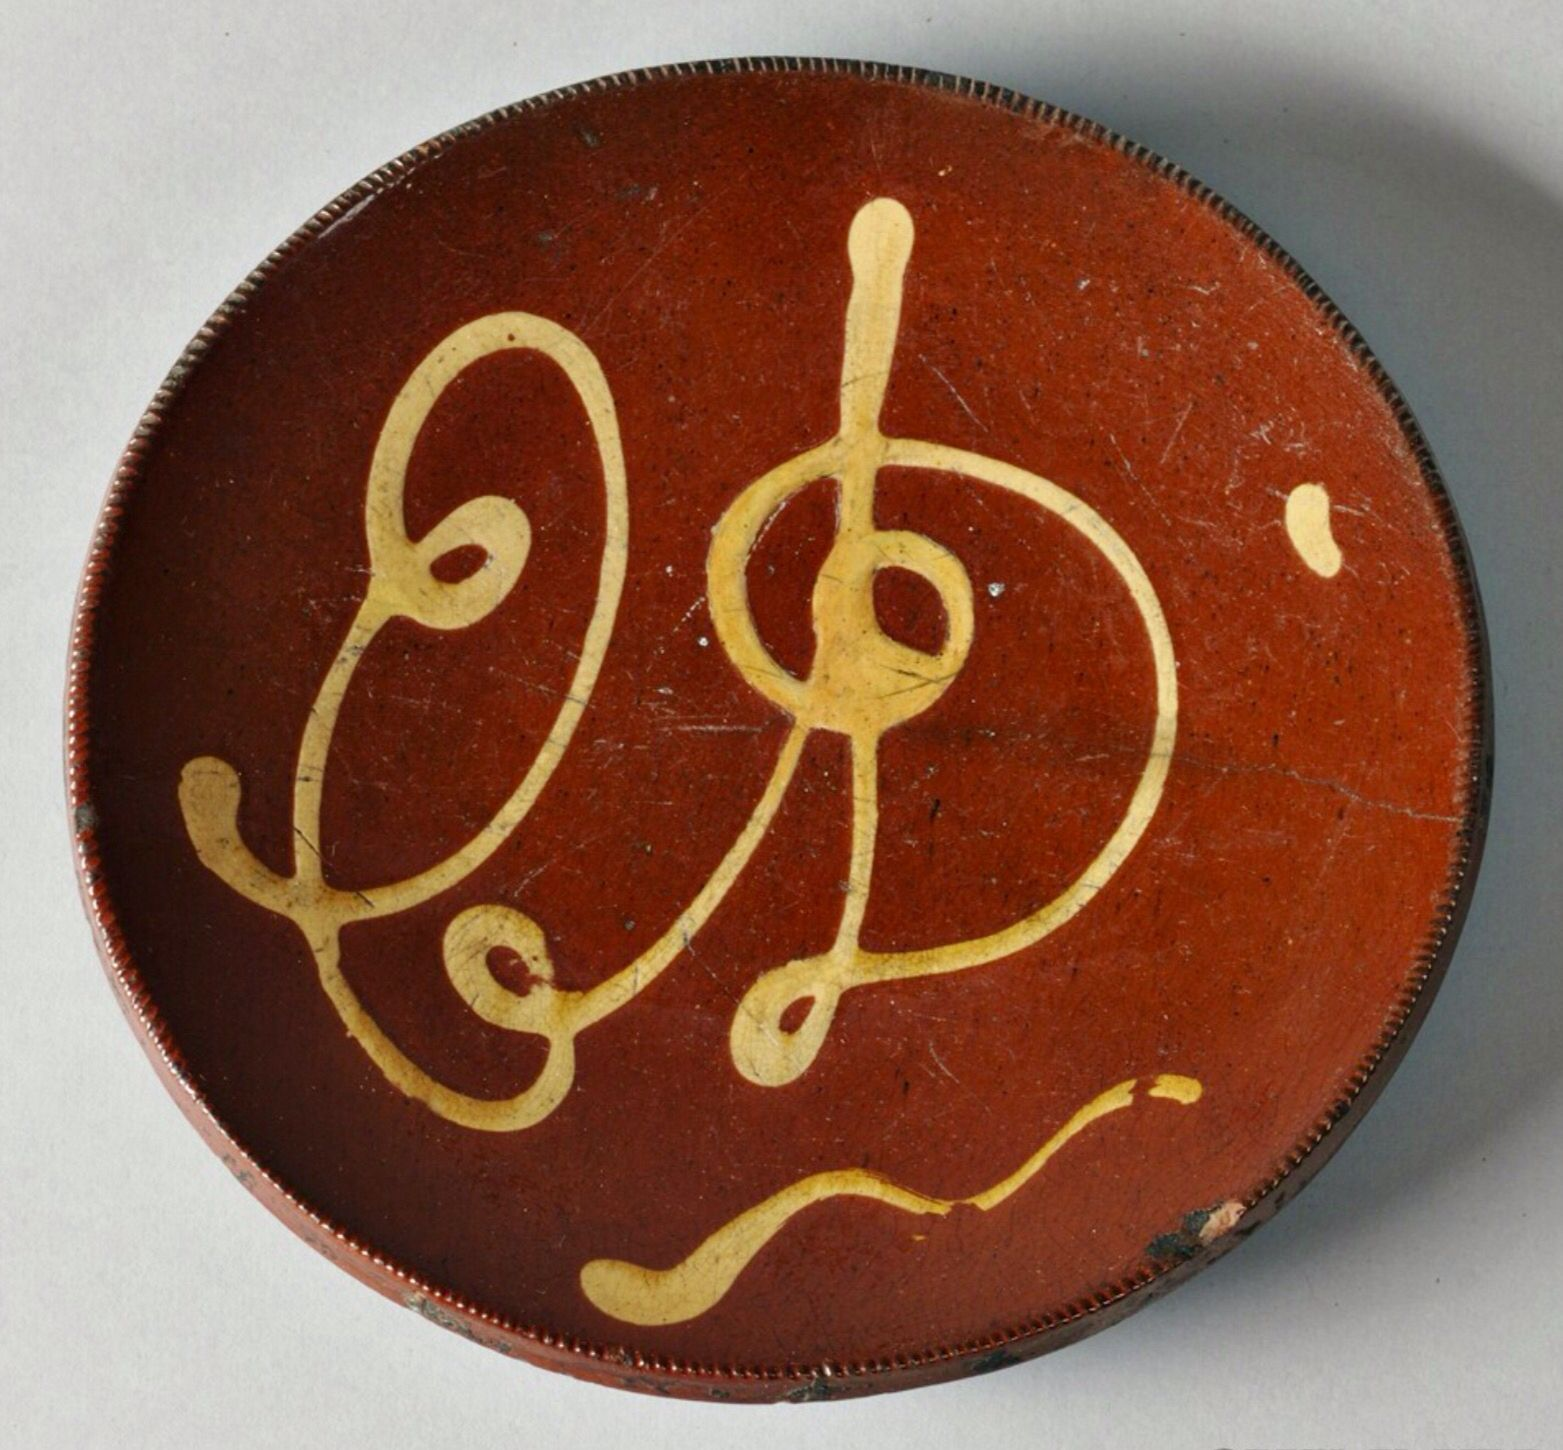 """Skinner's - The Personal Collection of Lewis Scranton, Auction 2897M. May 21, 2016. Lot: 230.  Estimate: $400-600.  Realized: $425.   Description:  Redware Plate with Yellow Slip Inscription """"ED,"""" Norwalk, Connecticut, early 19th century, round, with coggled rim, (hairline crack, minor rim chips), dia. 8 1/4 in."""